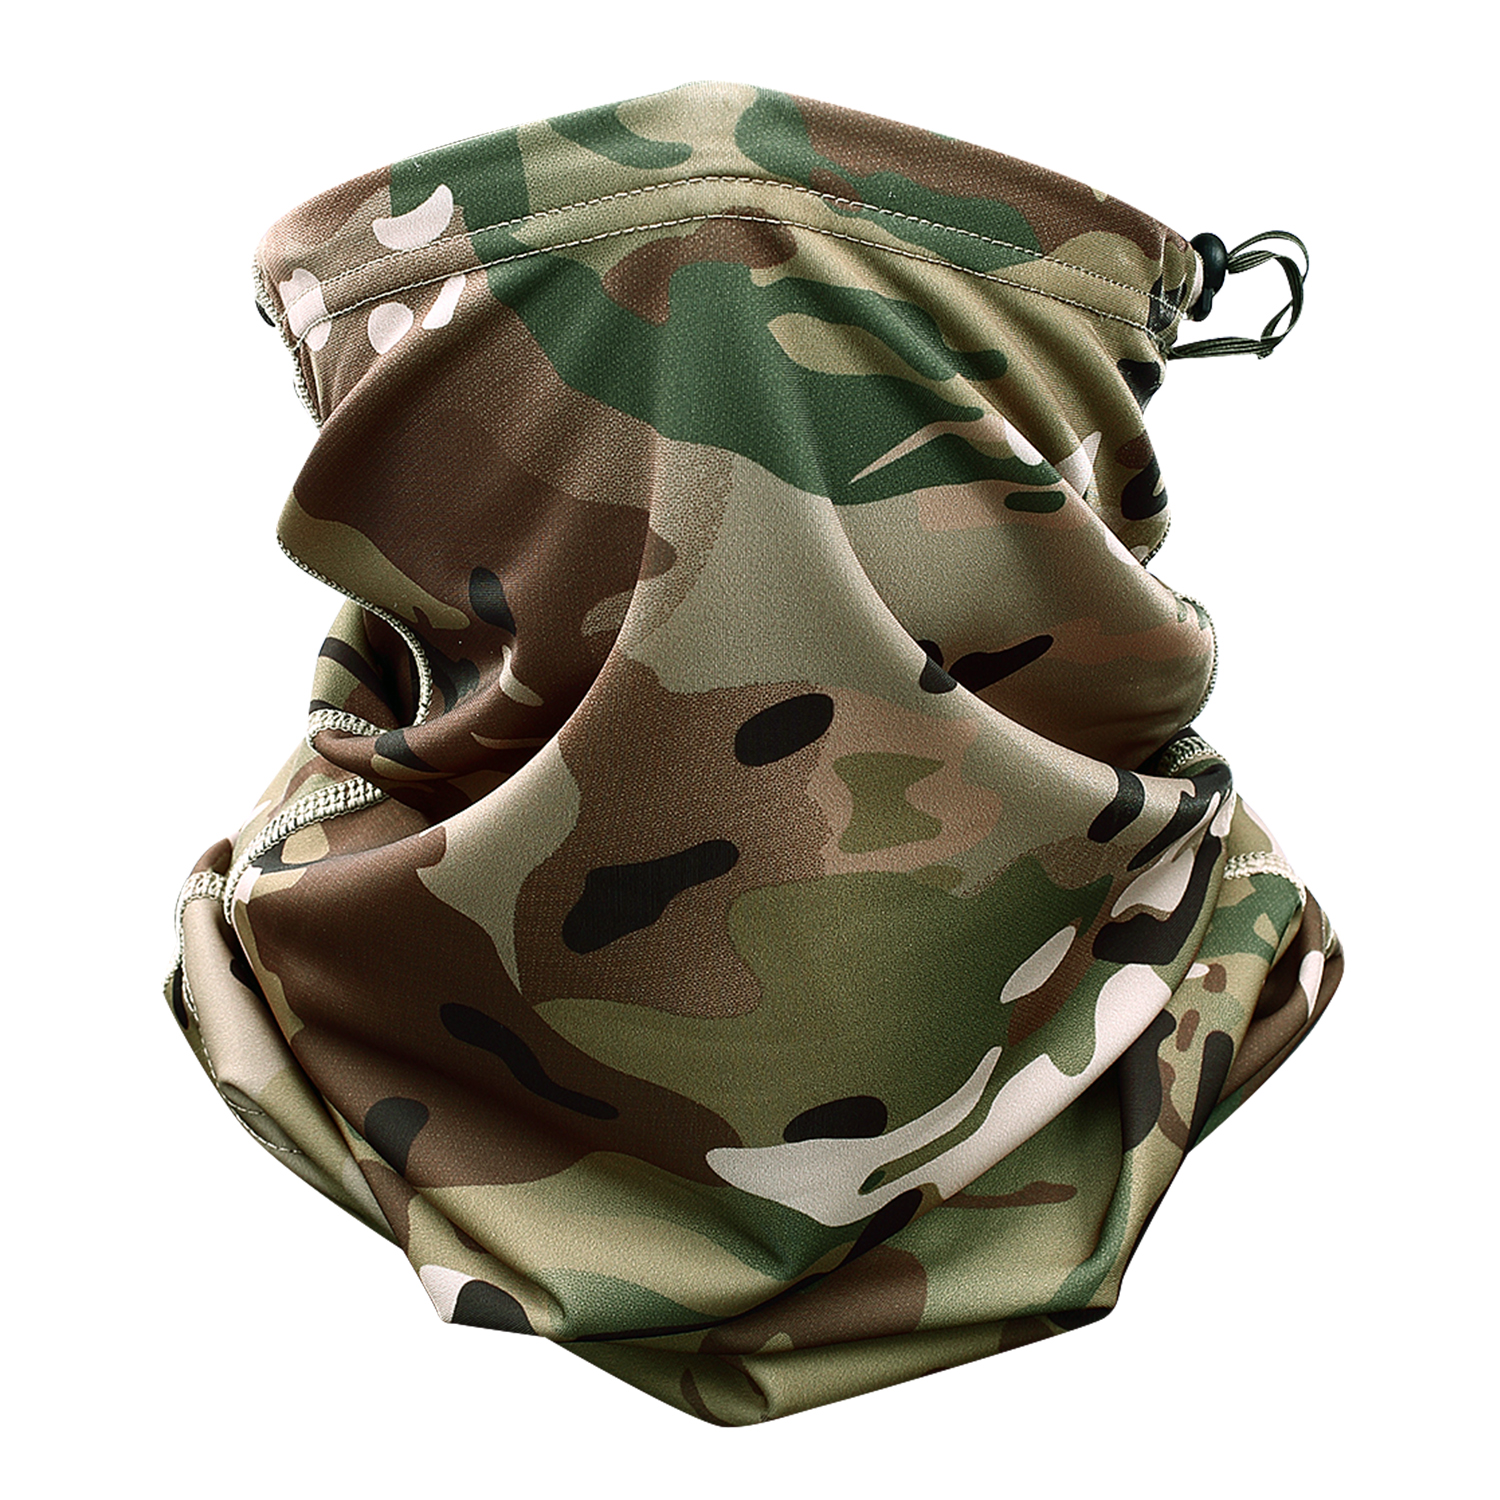 US $4.91 40% OFF|Multicam Scarf Camouflage Bandana Tactical Neck Gaiter Tube Face Mask Sun Head Military Army Magic Headband Beanie Wristband|magic headband|scarf magic|tube face mask - AliExpress